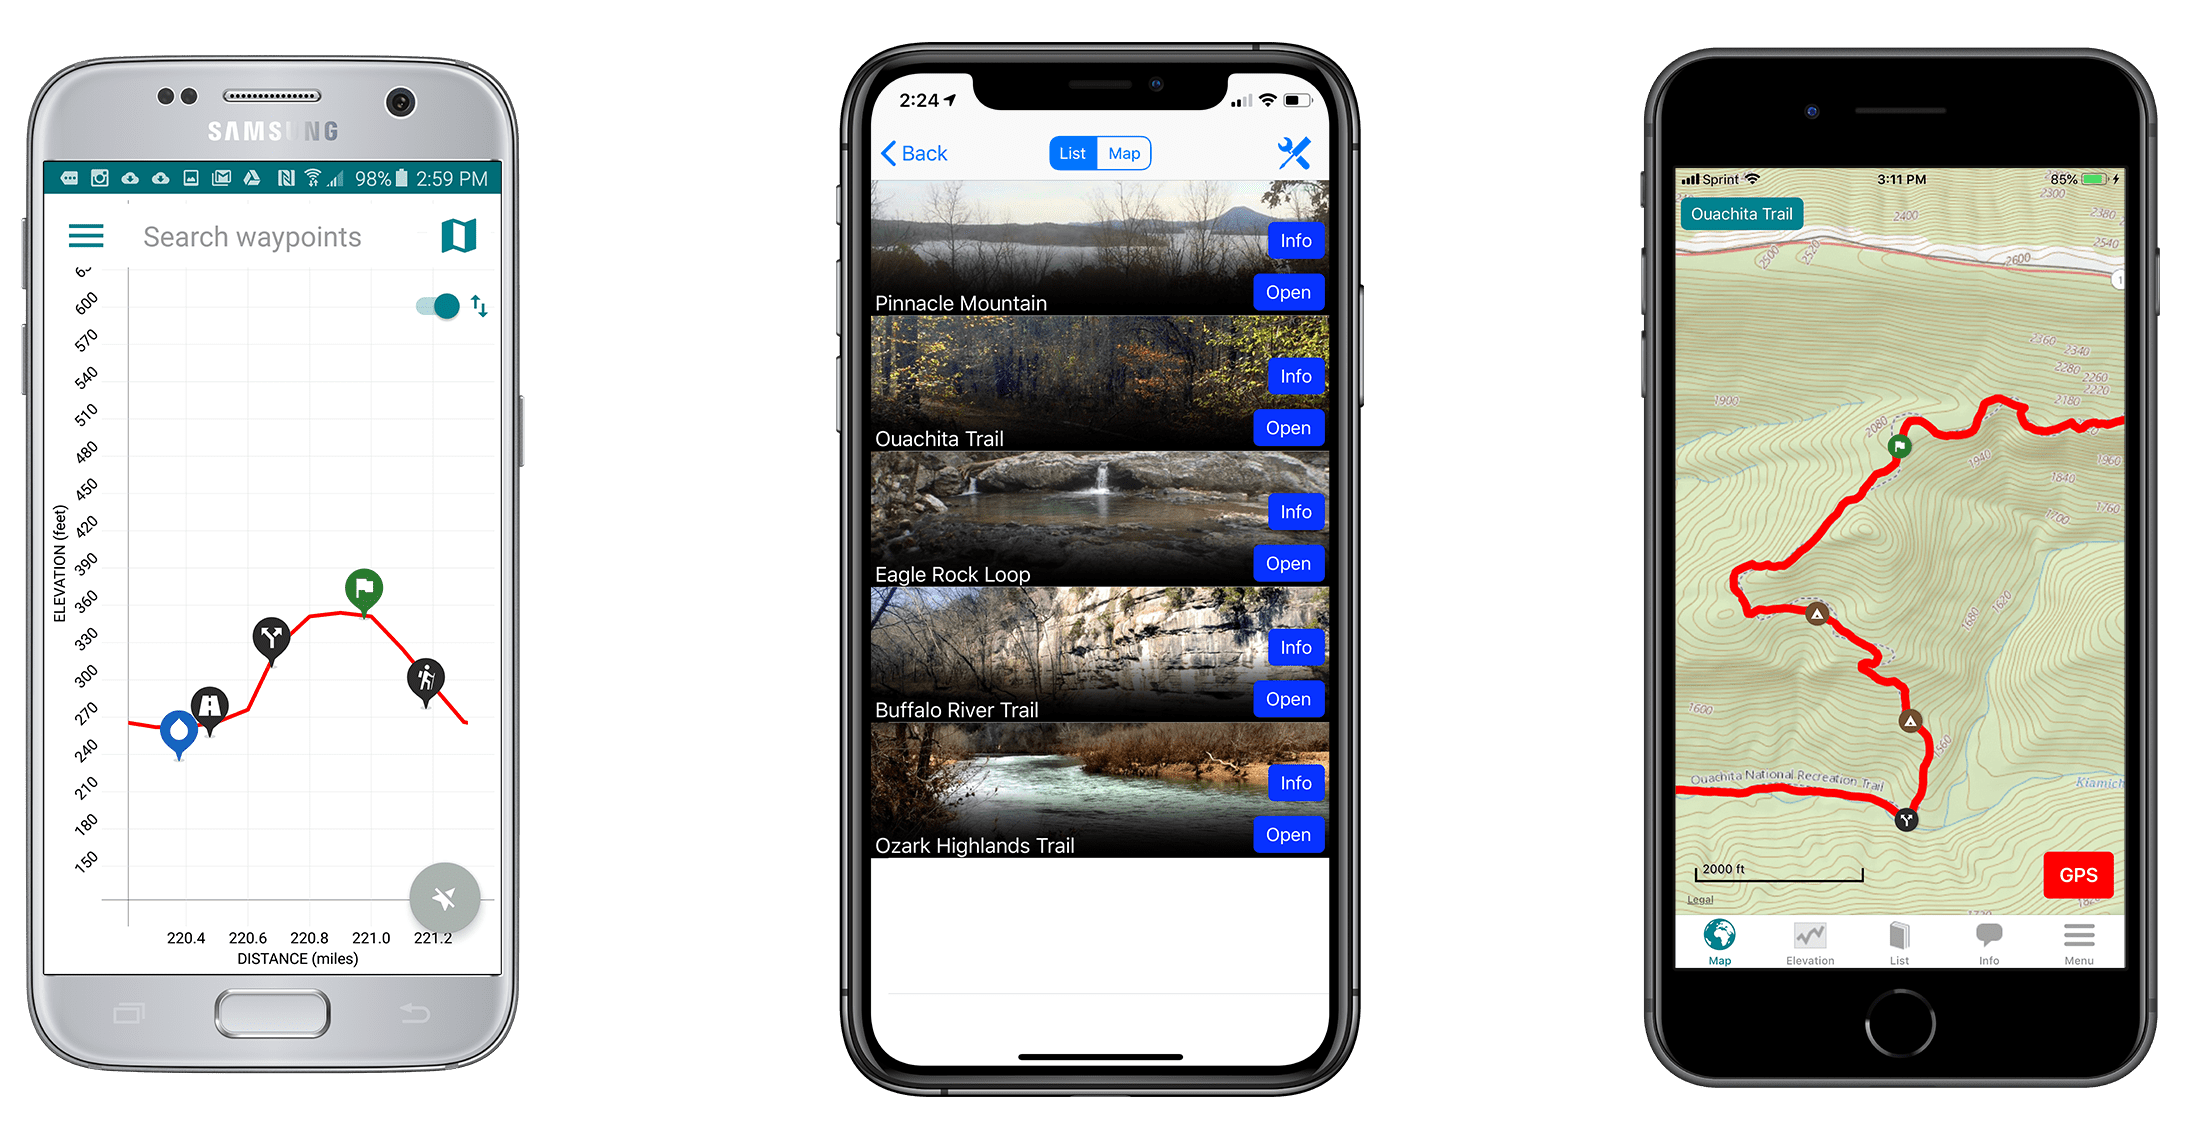 Screenshots of the Guthook Guides Ouachita Trail guide.